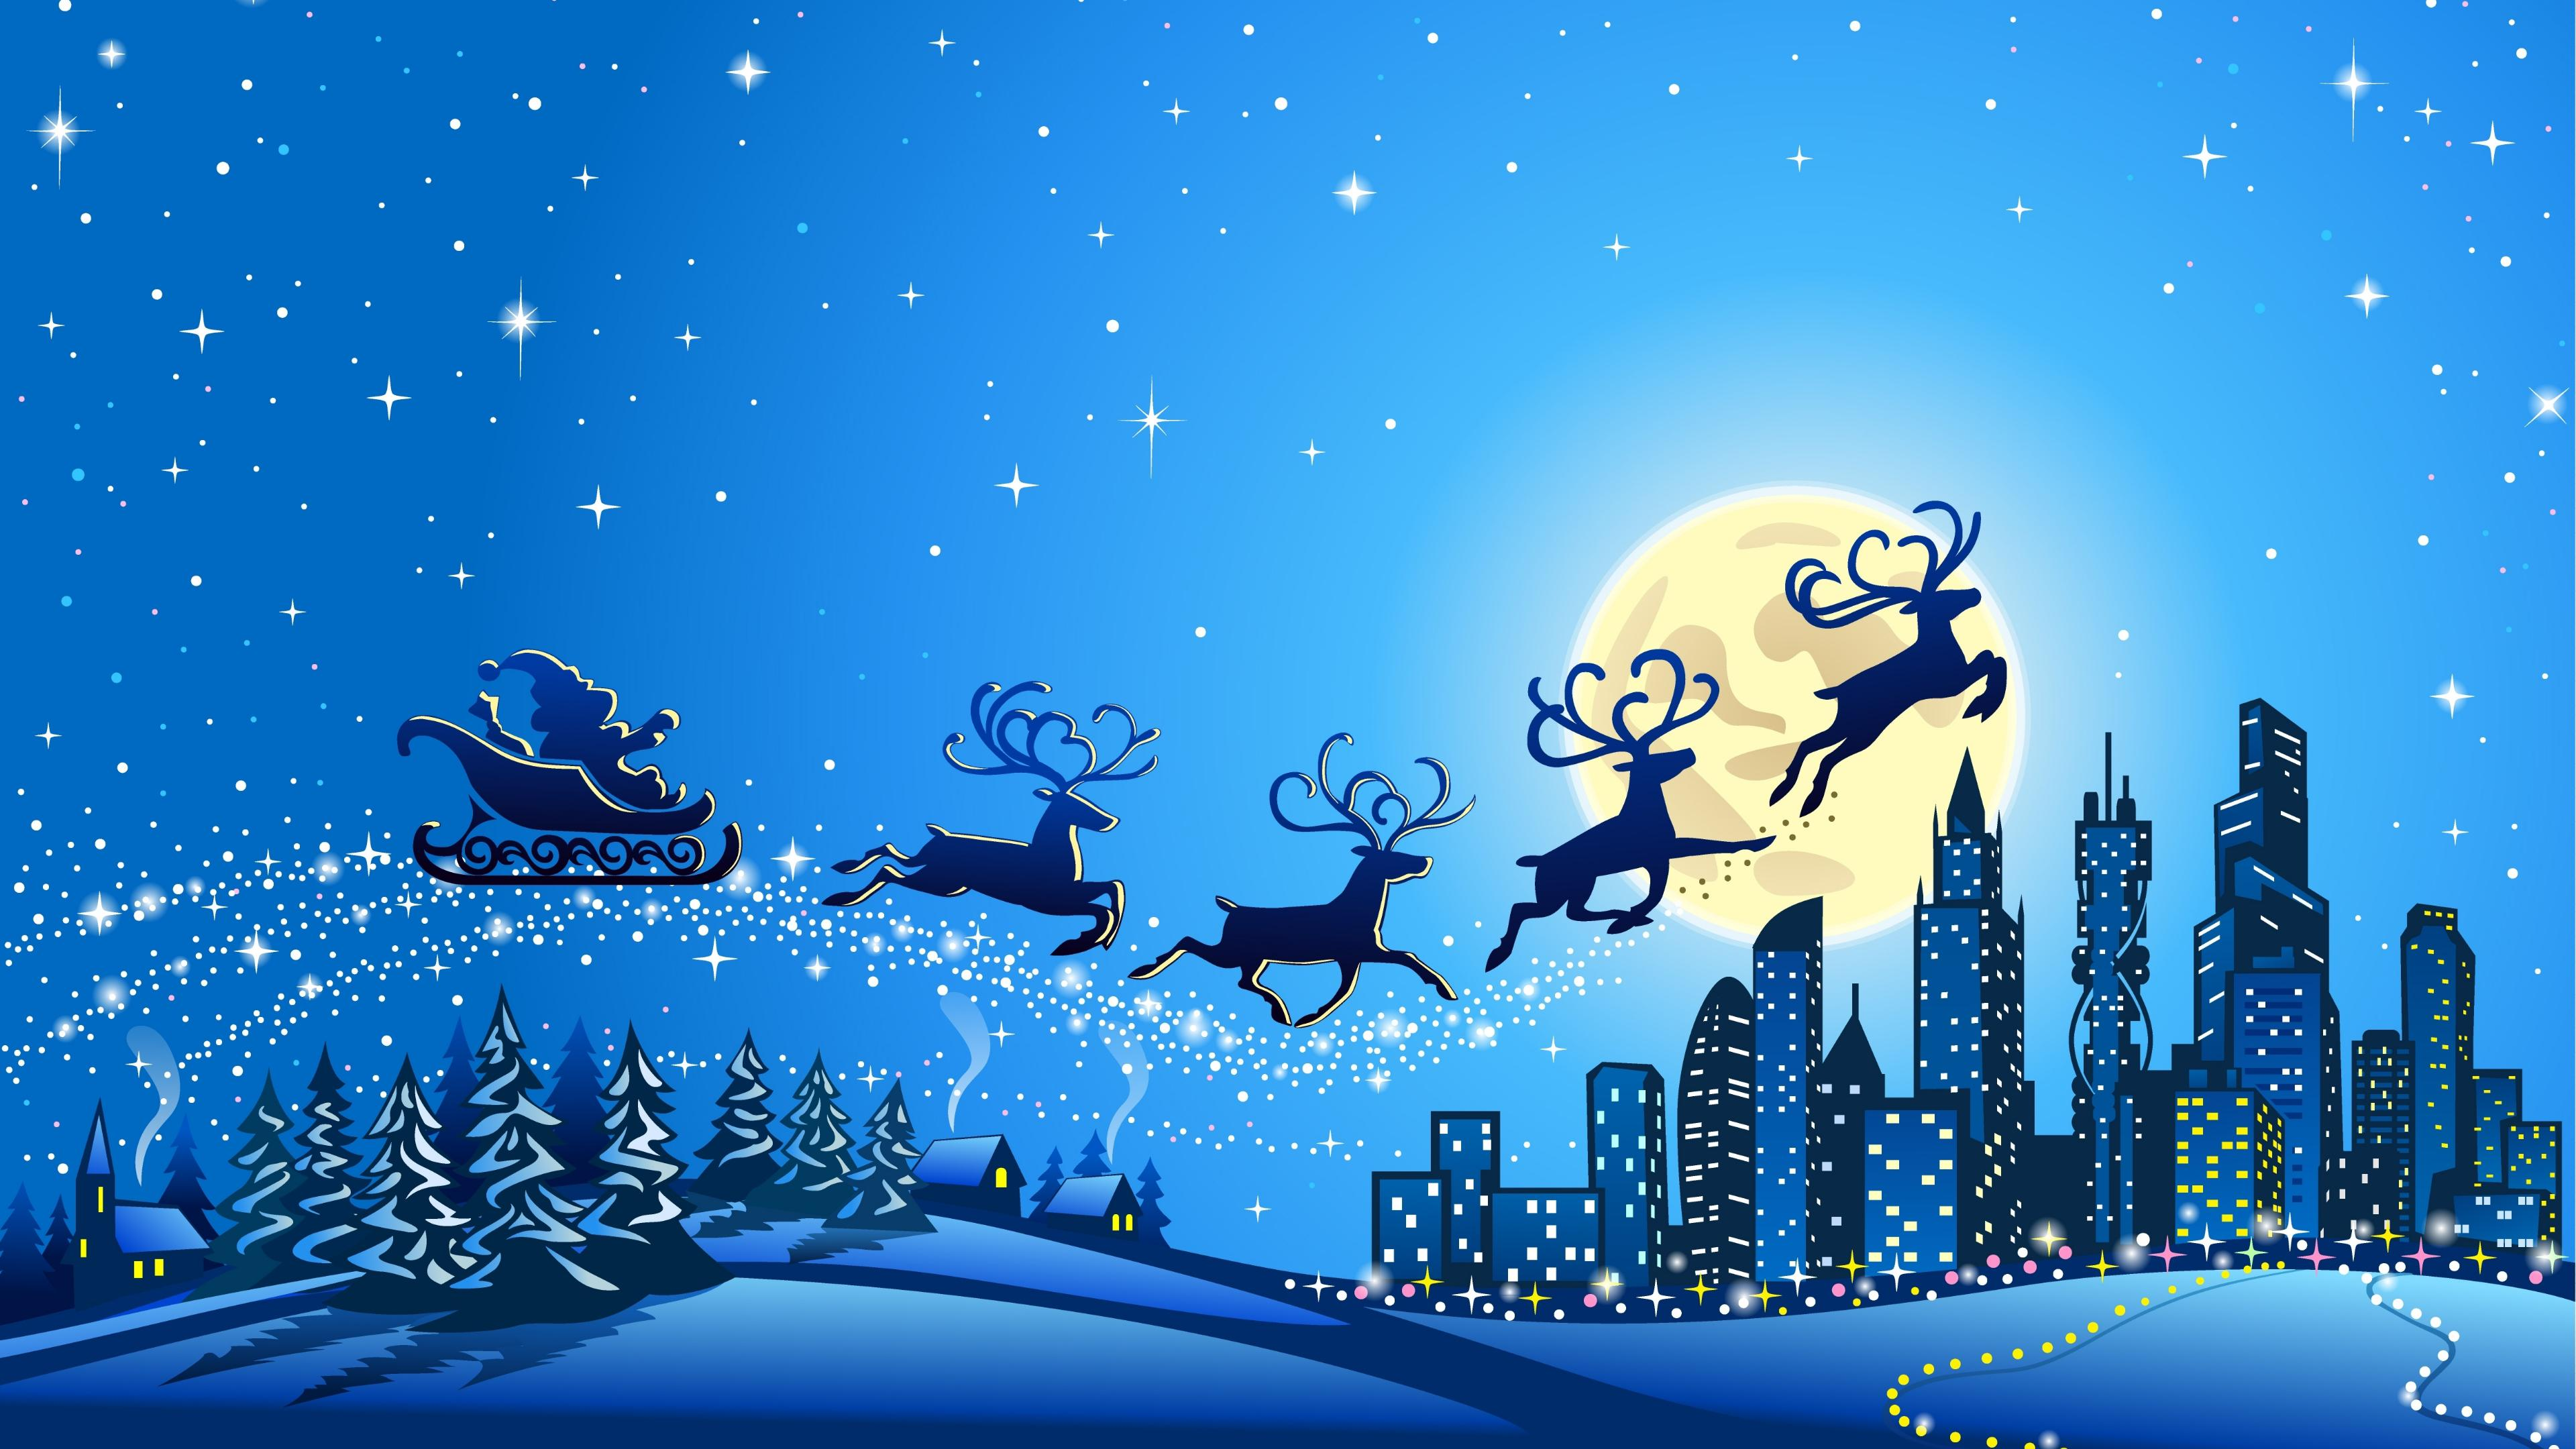 Download Merry Christmas Wallpaper images